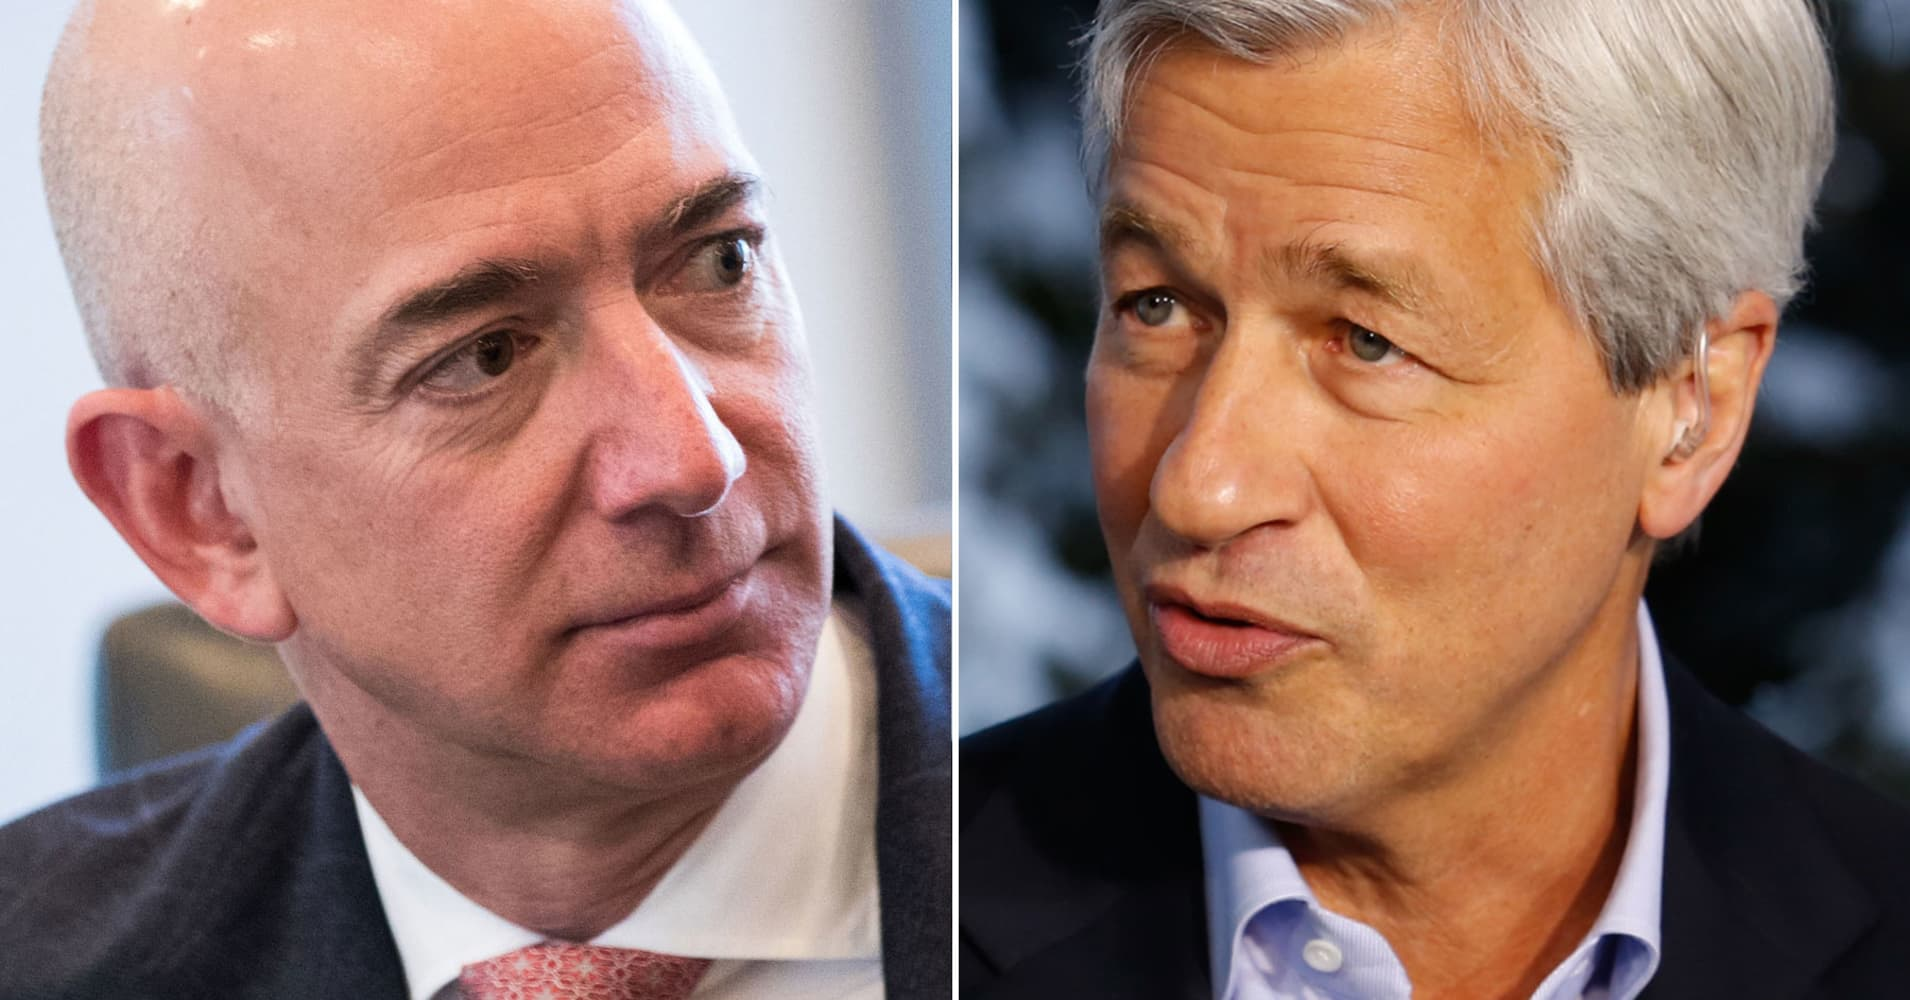 Jamie Dimon Once Talked to Jeff Bezos About Taking a Job at Amazon